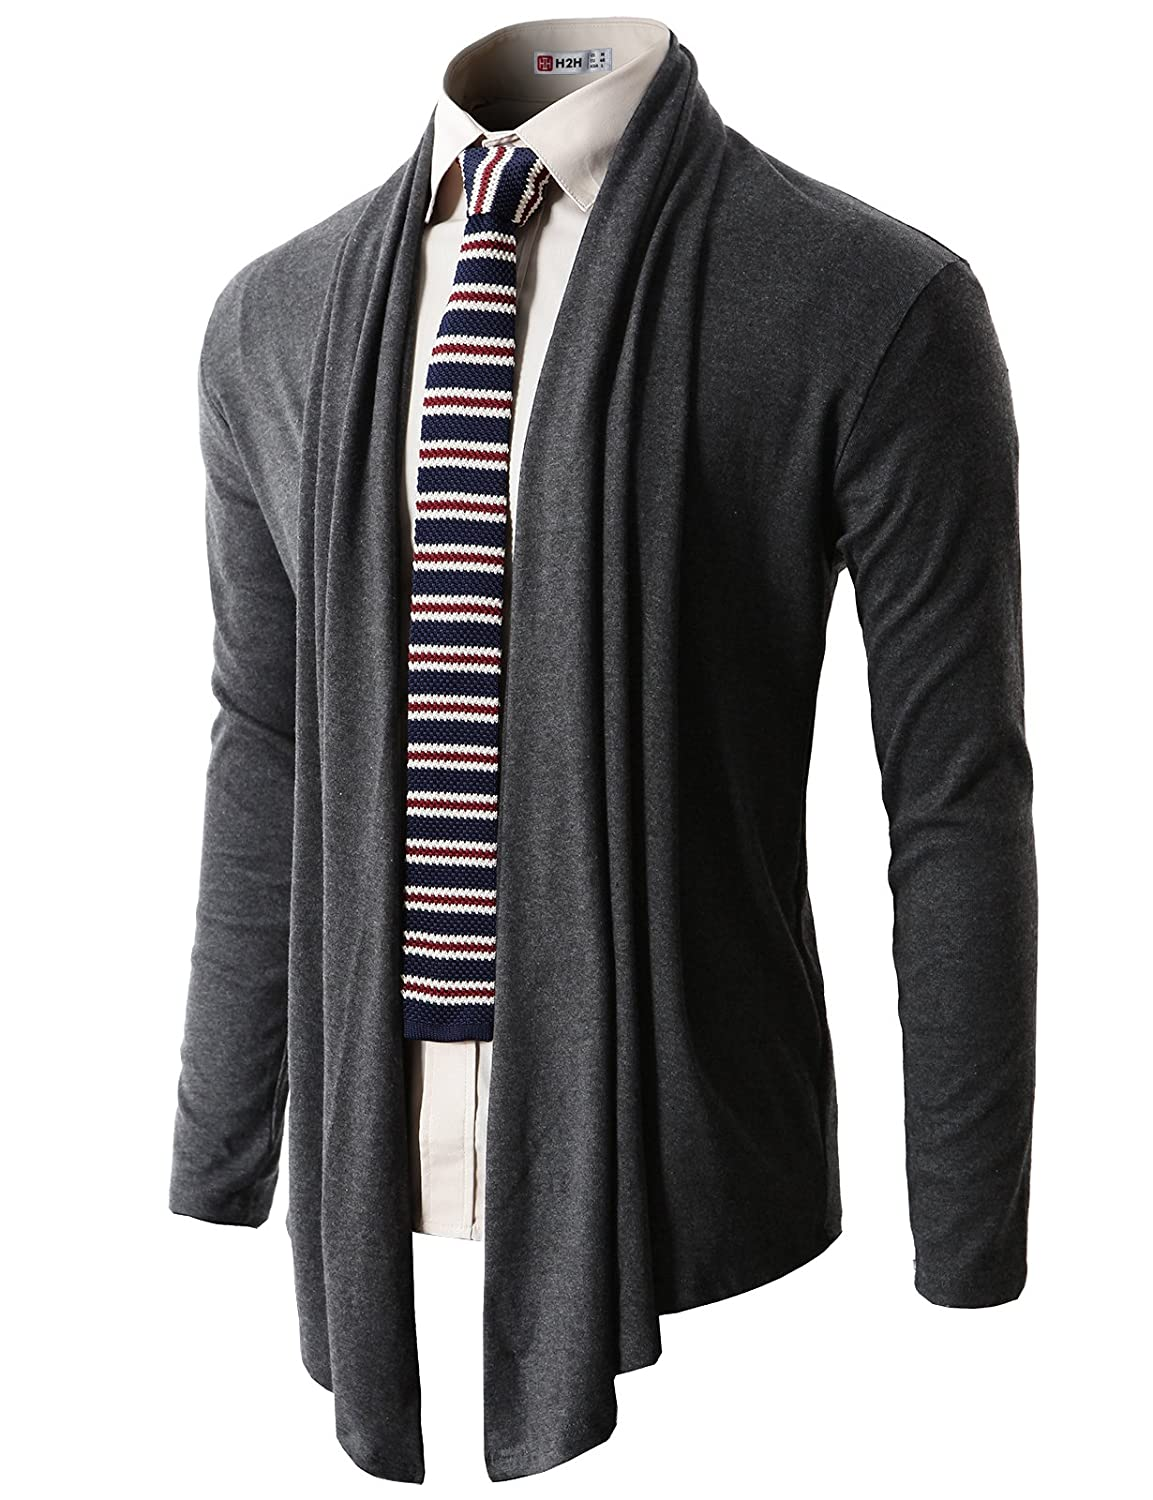 H2H Mens Casual Slim Fit Shawl Collar Open-Front Lightweight Long Cardigan